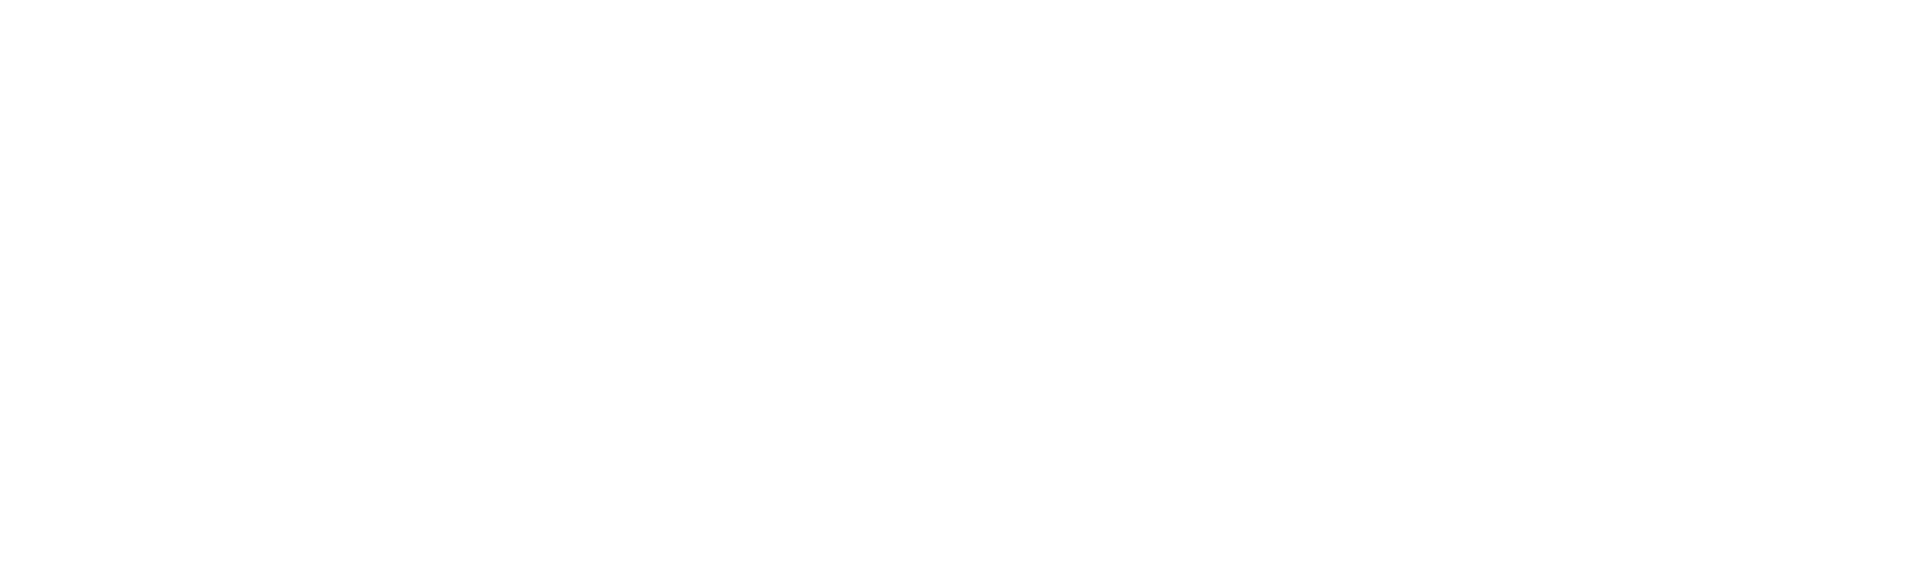 Bike Shop Hintermayr